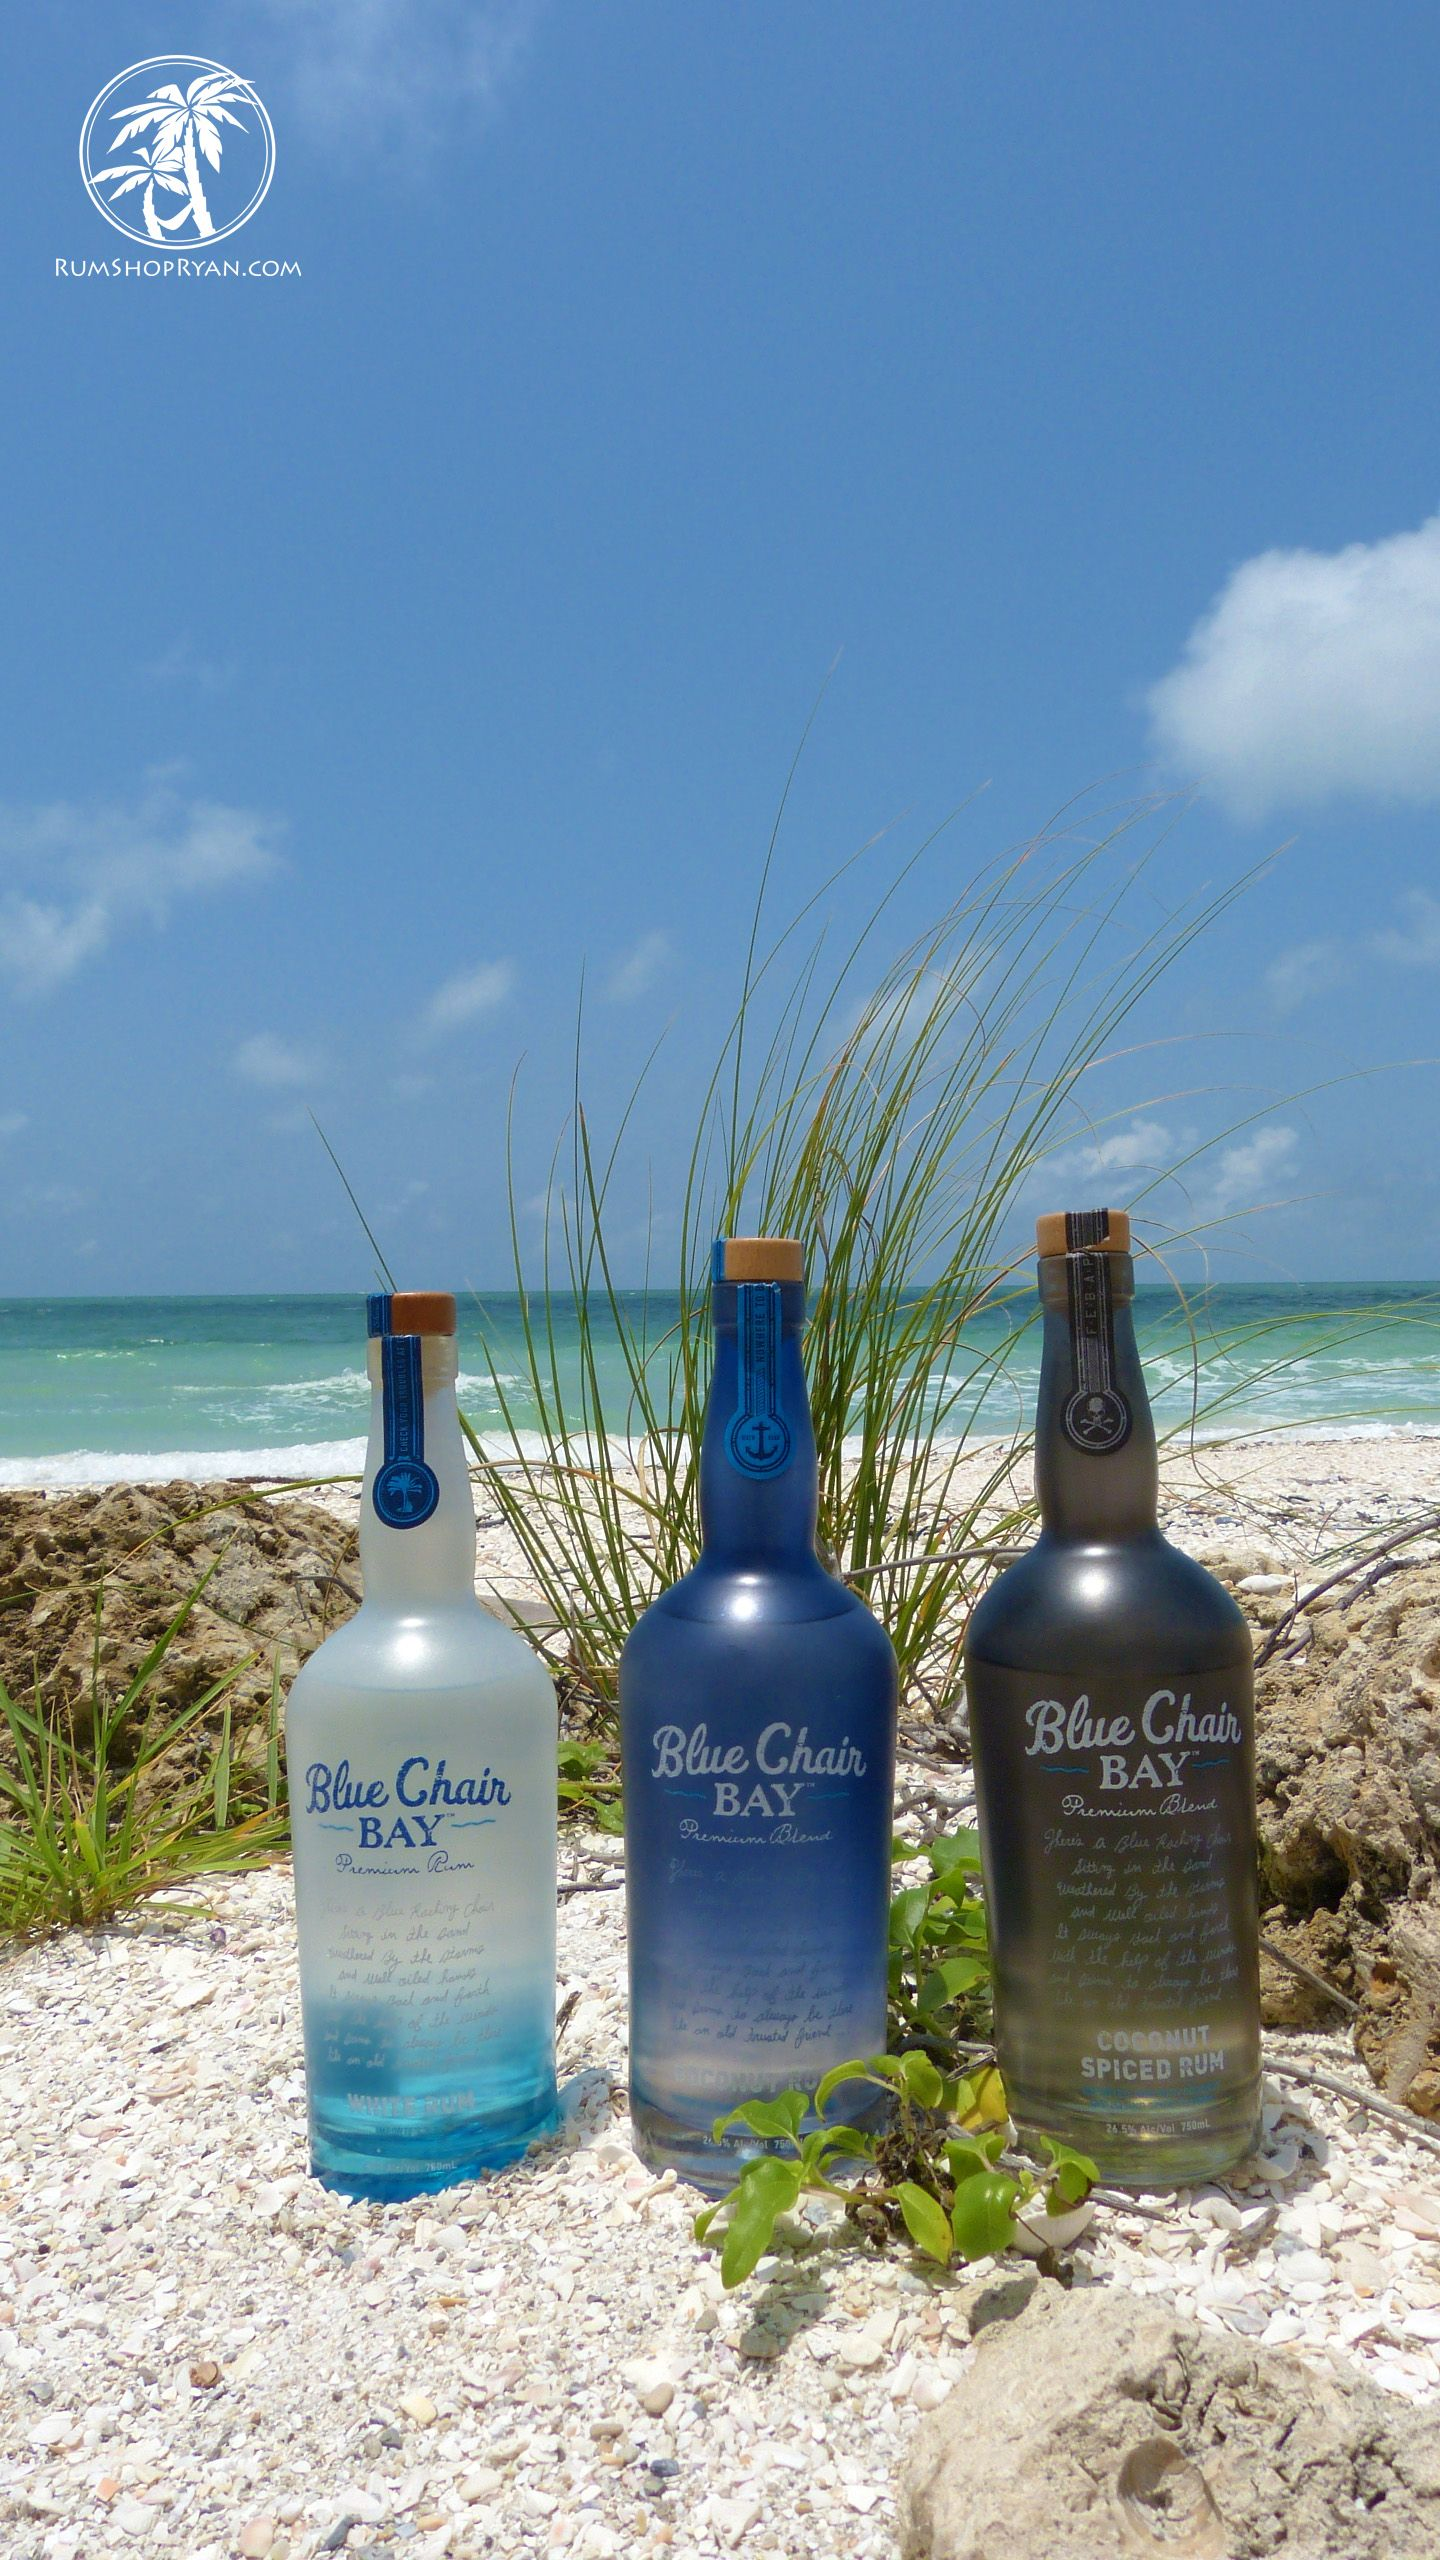 Blue Chair Bay Coconut Rum From The Beach To The Bottle Blue Chair Bay Rum Rums